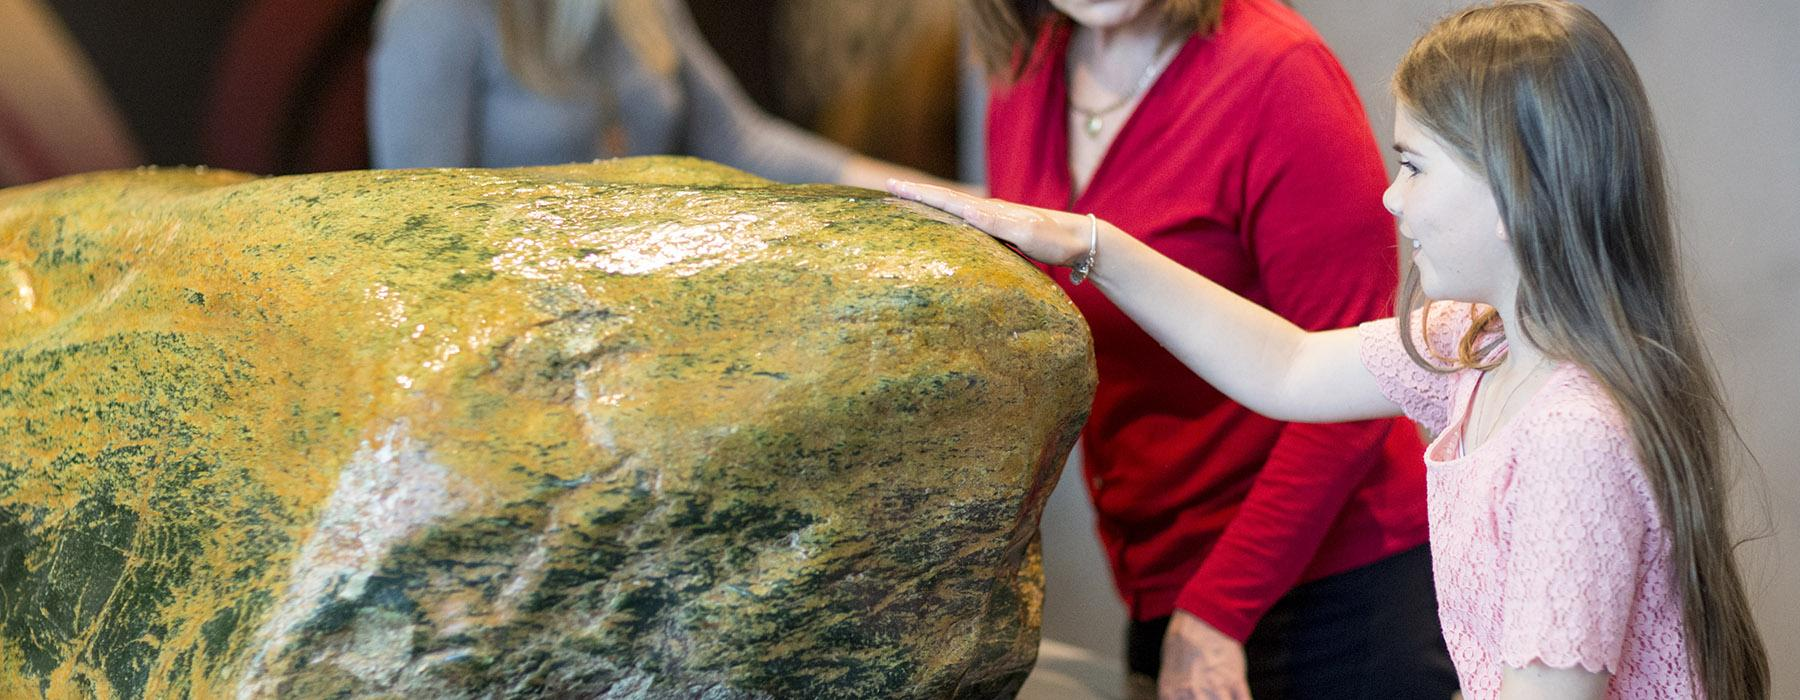 A little girl touches the greenstone in Te Marae